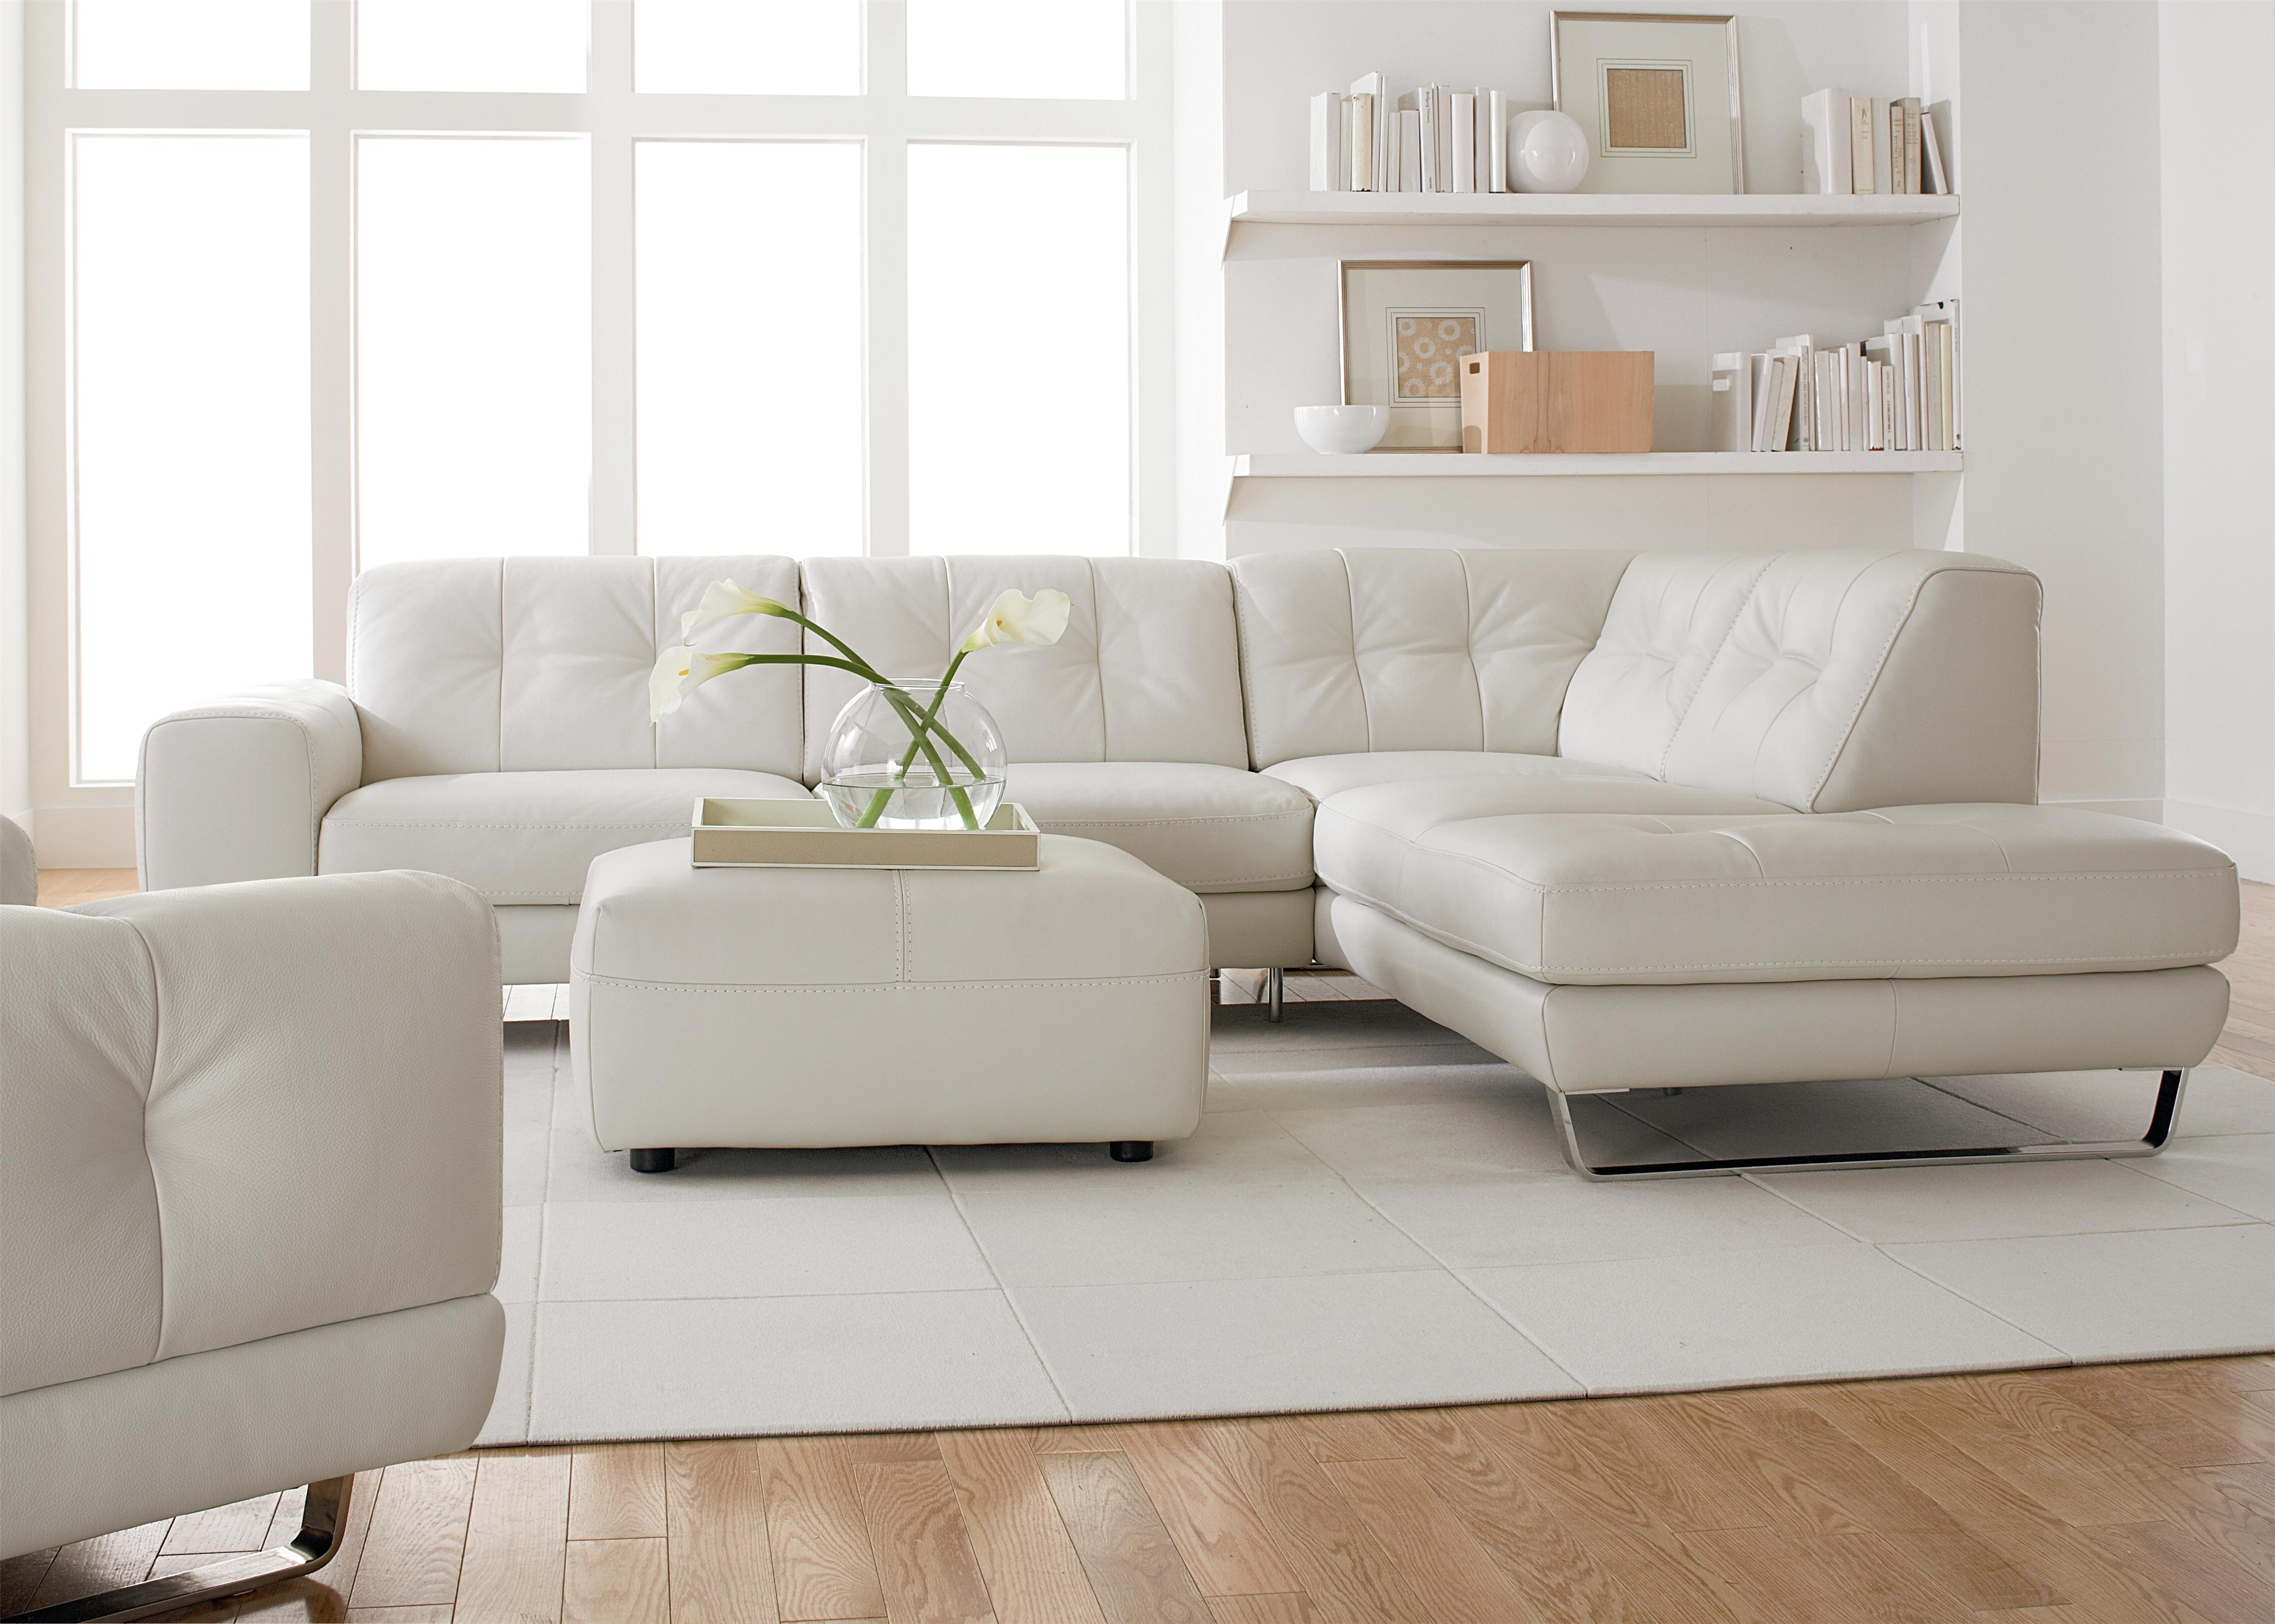 Matter Brothers Outlet Store Kanes Furniture In Orlando Baer pertaining to Kanes Sectional Sofas (Image 5 of 10)